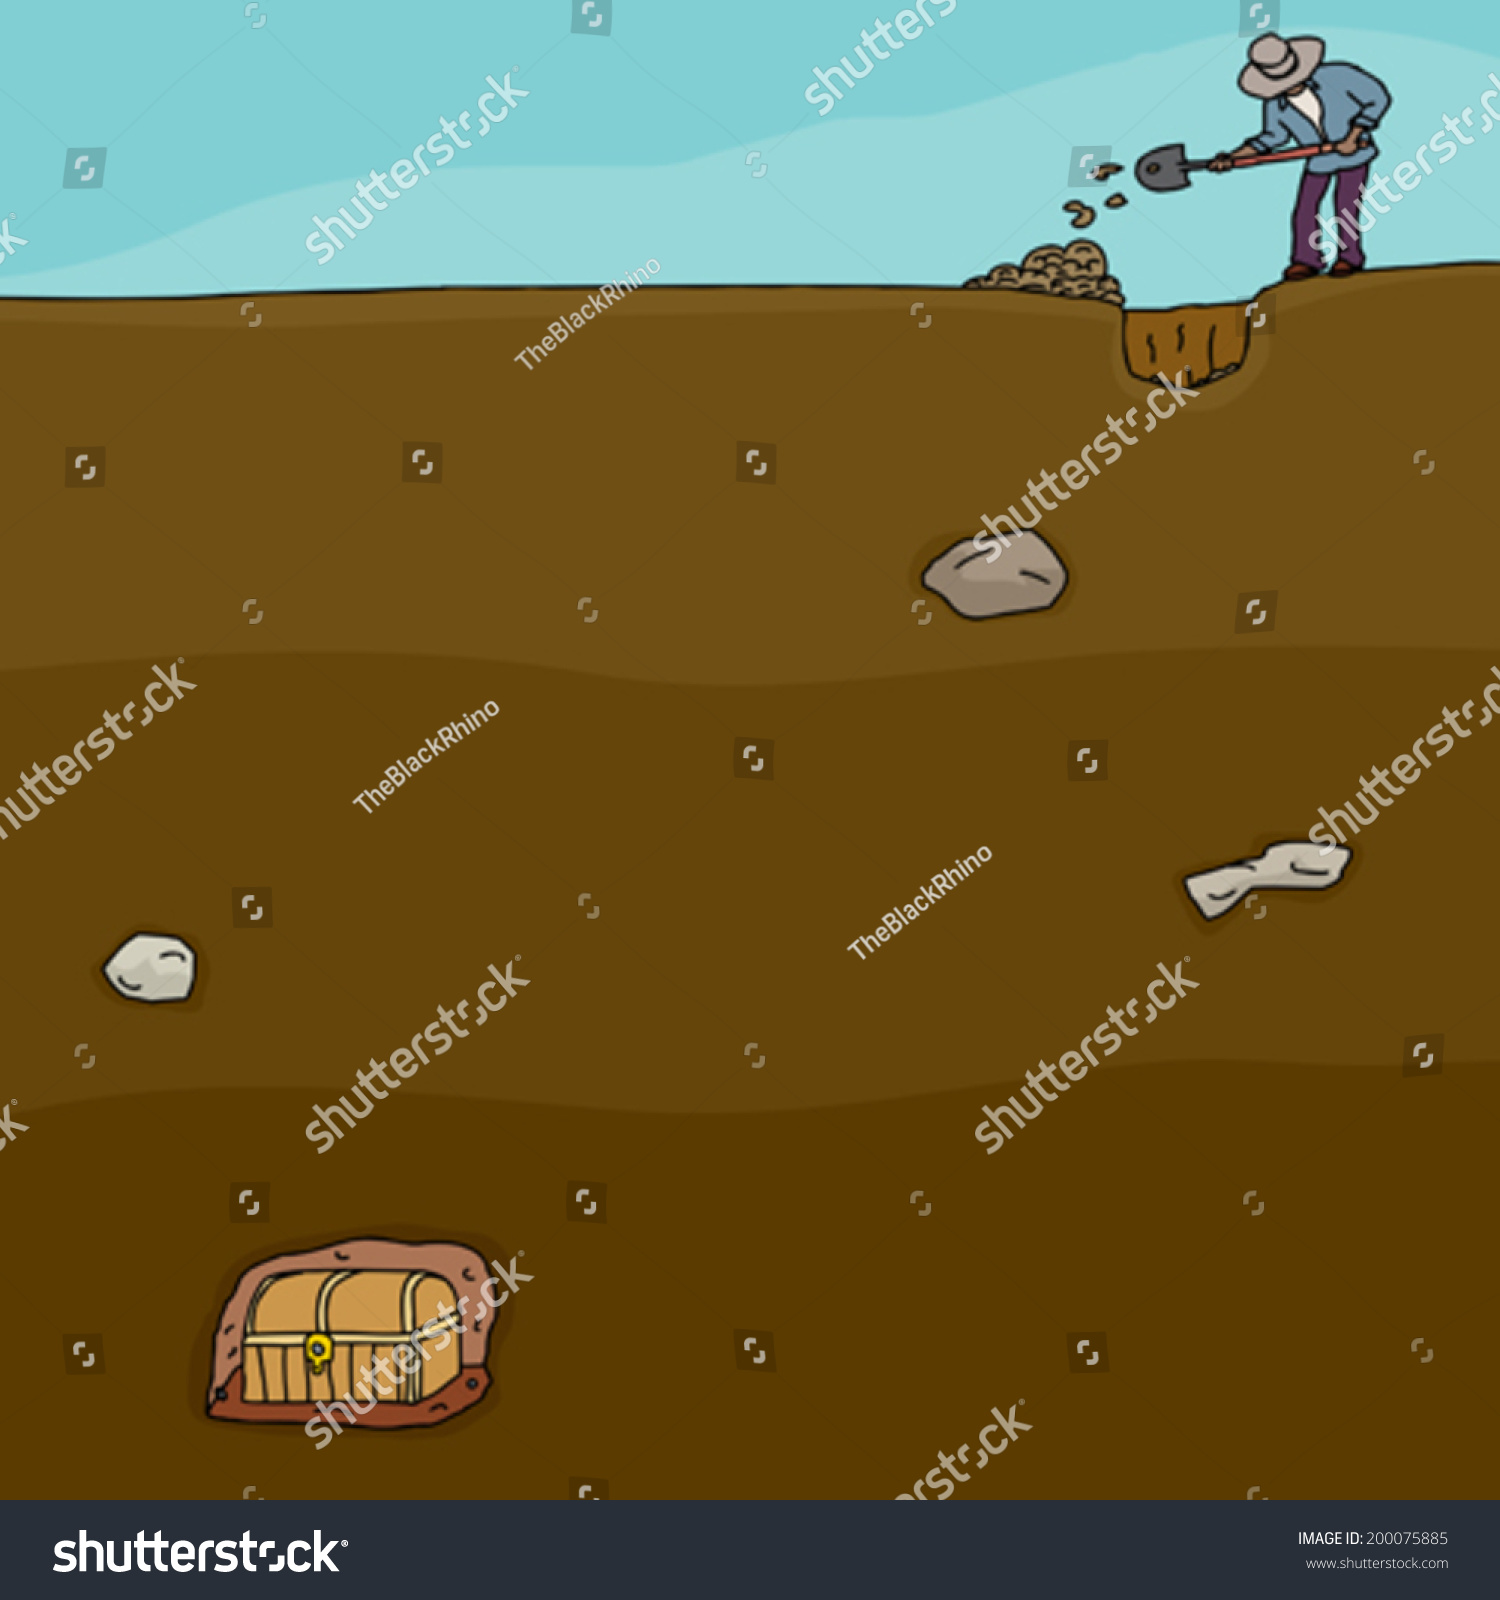 digging for buried treasure Someone digging for a buried treasure - royalty free clipart picture picture description: clip art picture of someone digging for a buried treasurethis royalty free clipart image of someone digging for a buried treasure is available by purchasing a low cost subscription.